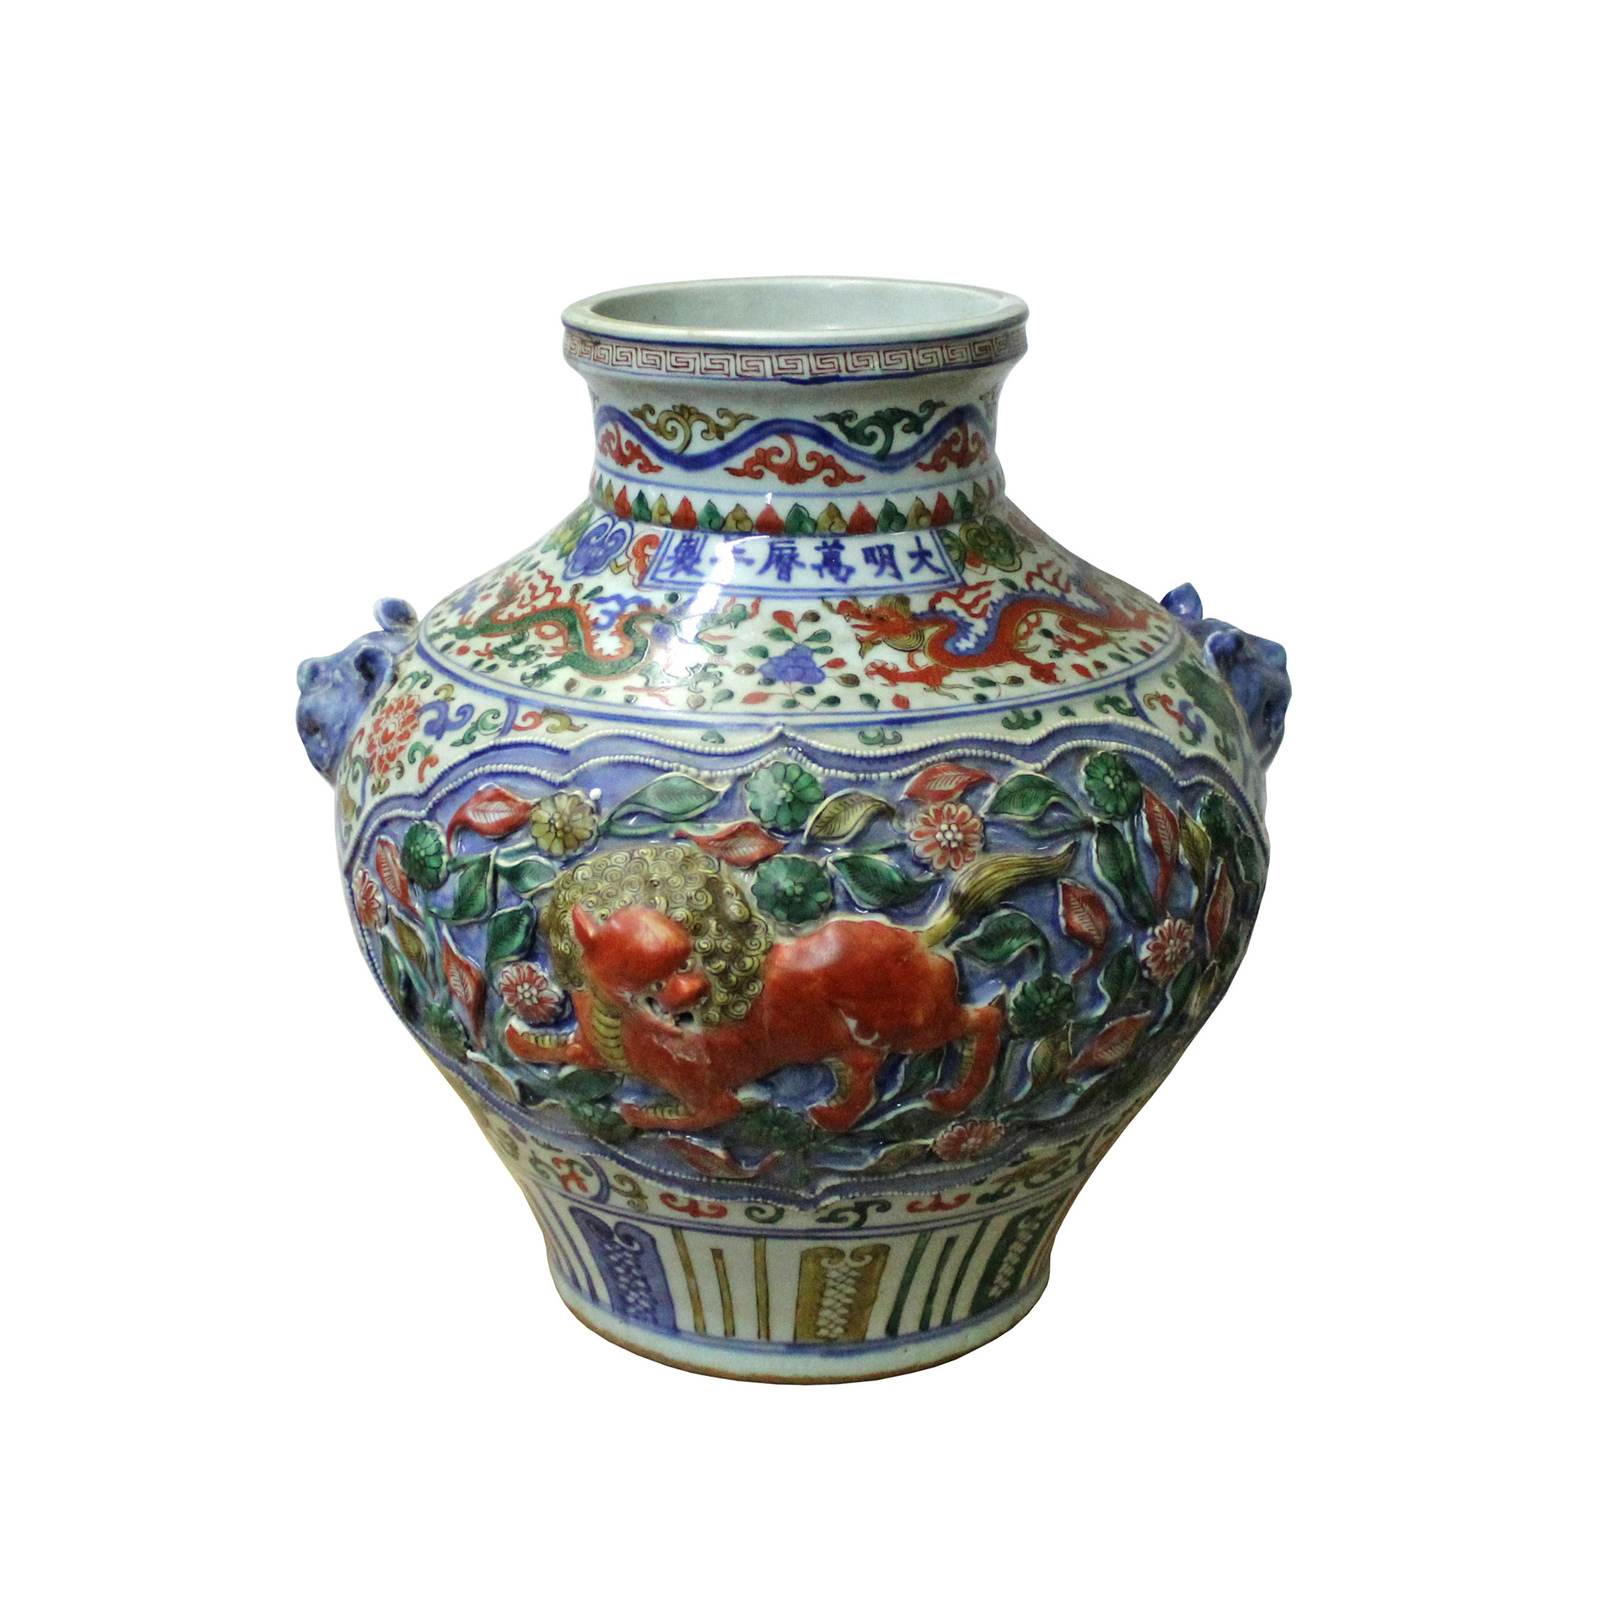 Primary image for Handmade Ceramic Multi Color Dimensional Foo Dog Vase Jar cs4250